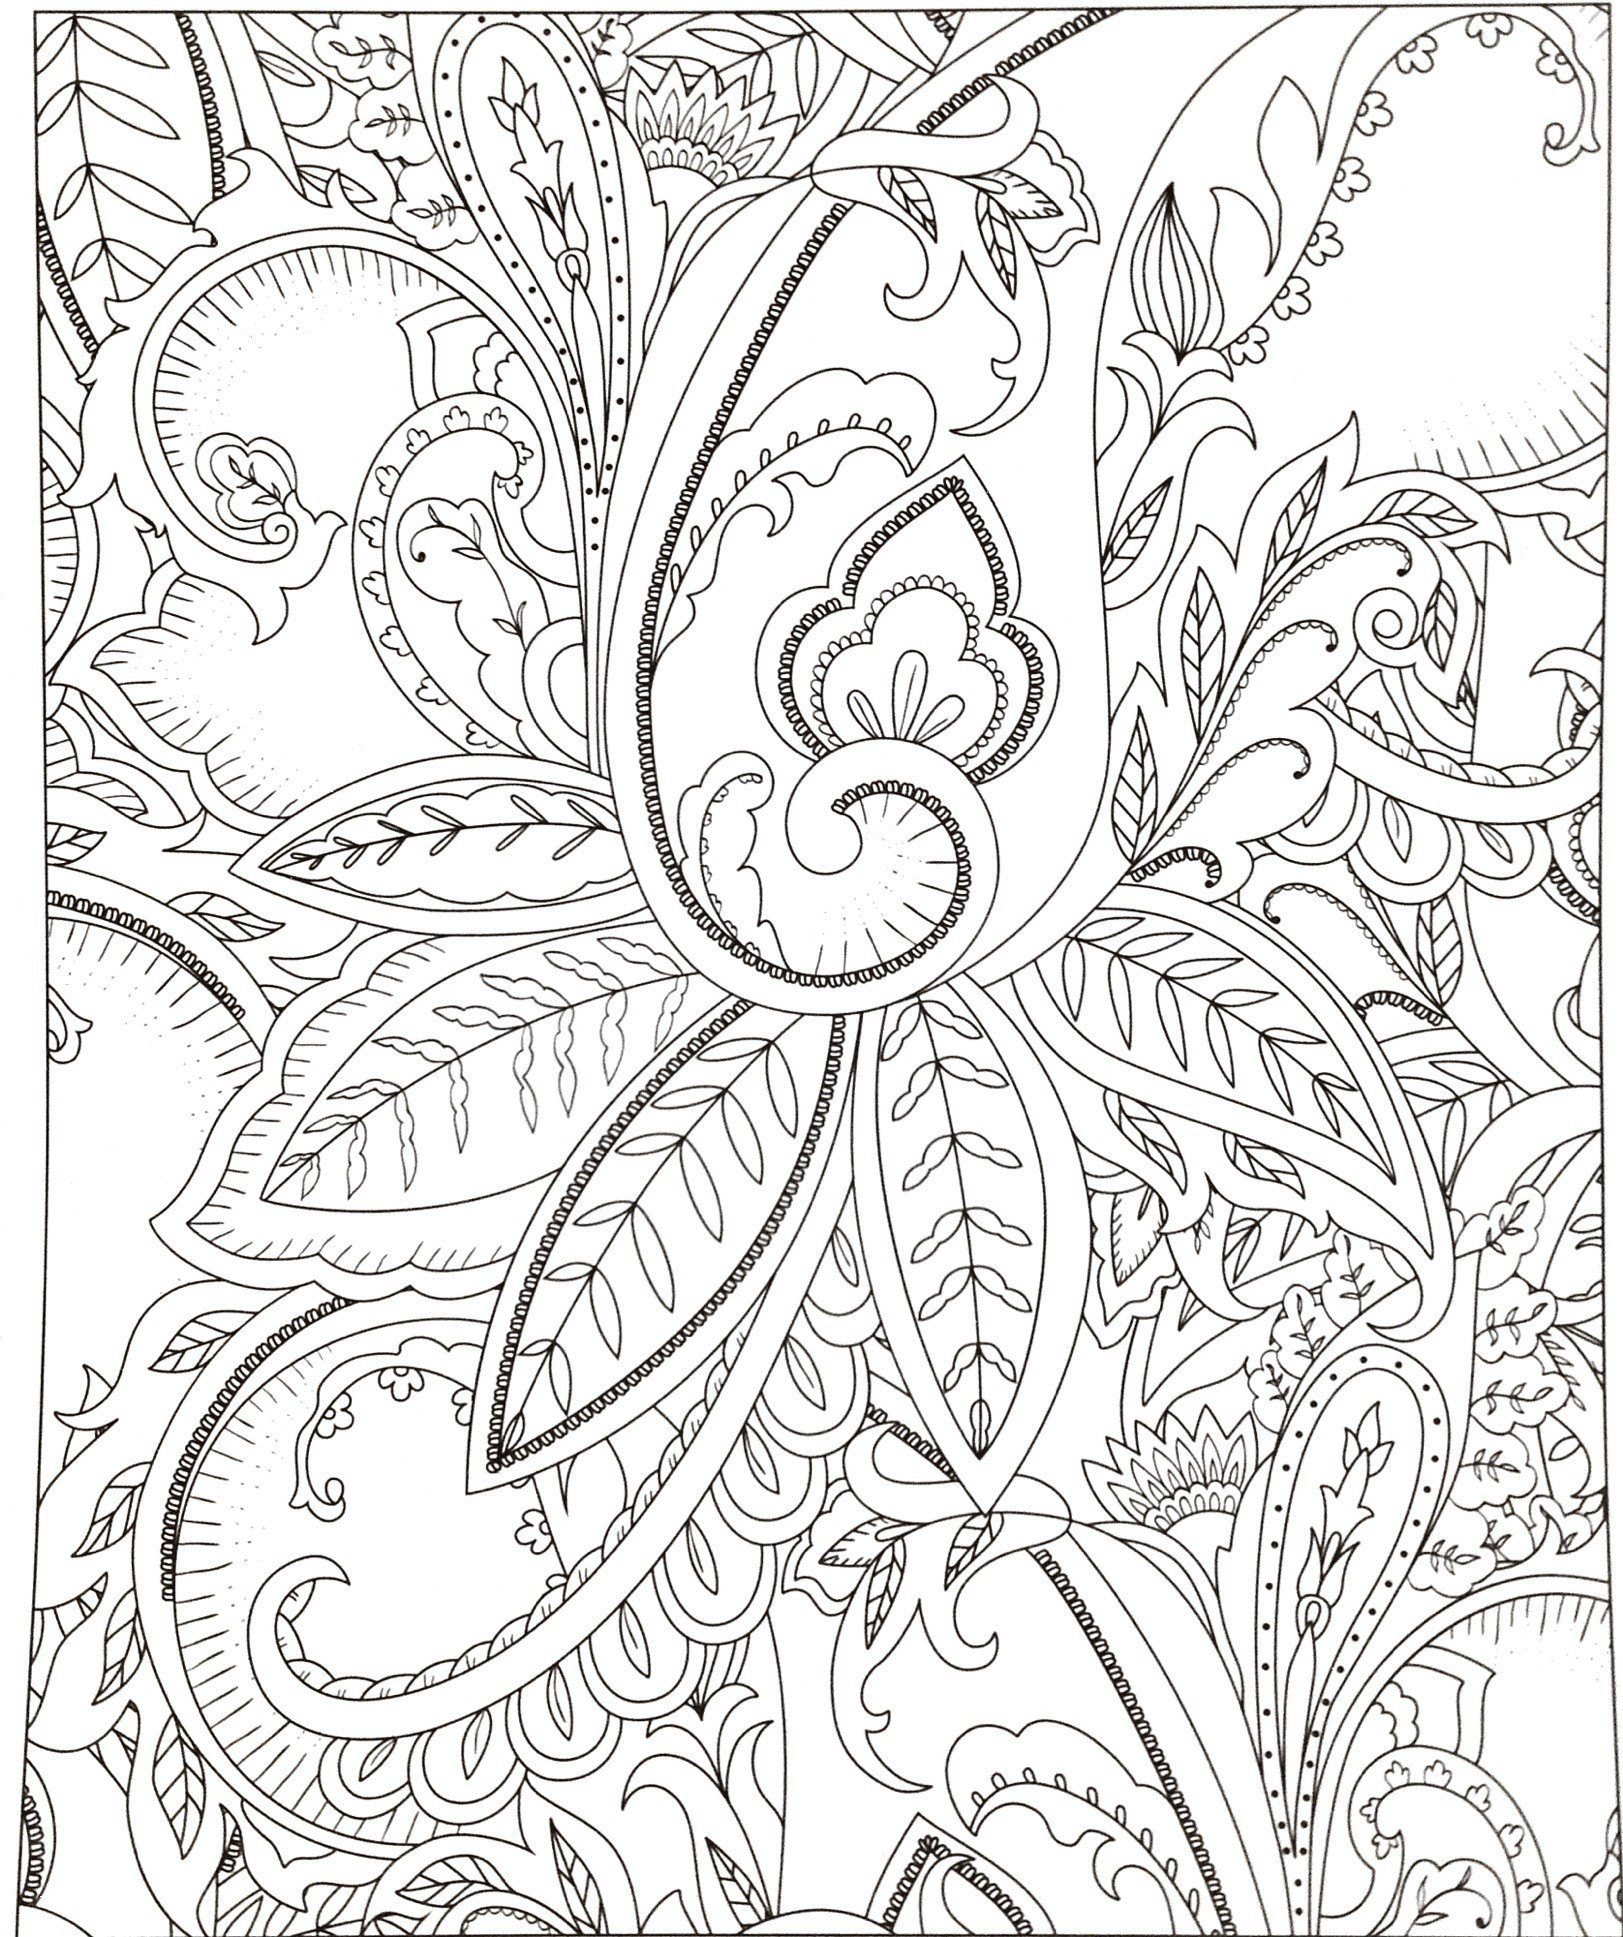 coloring pages butterfly Collection-Coloring Pages Butterflies Free Luxury Free Coloring Fresh Book Page Image Beautiful Page Coloring 0d Free 2-n